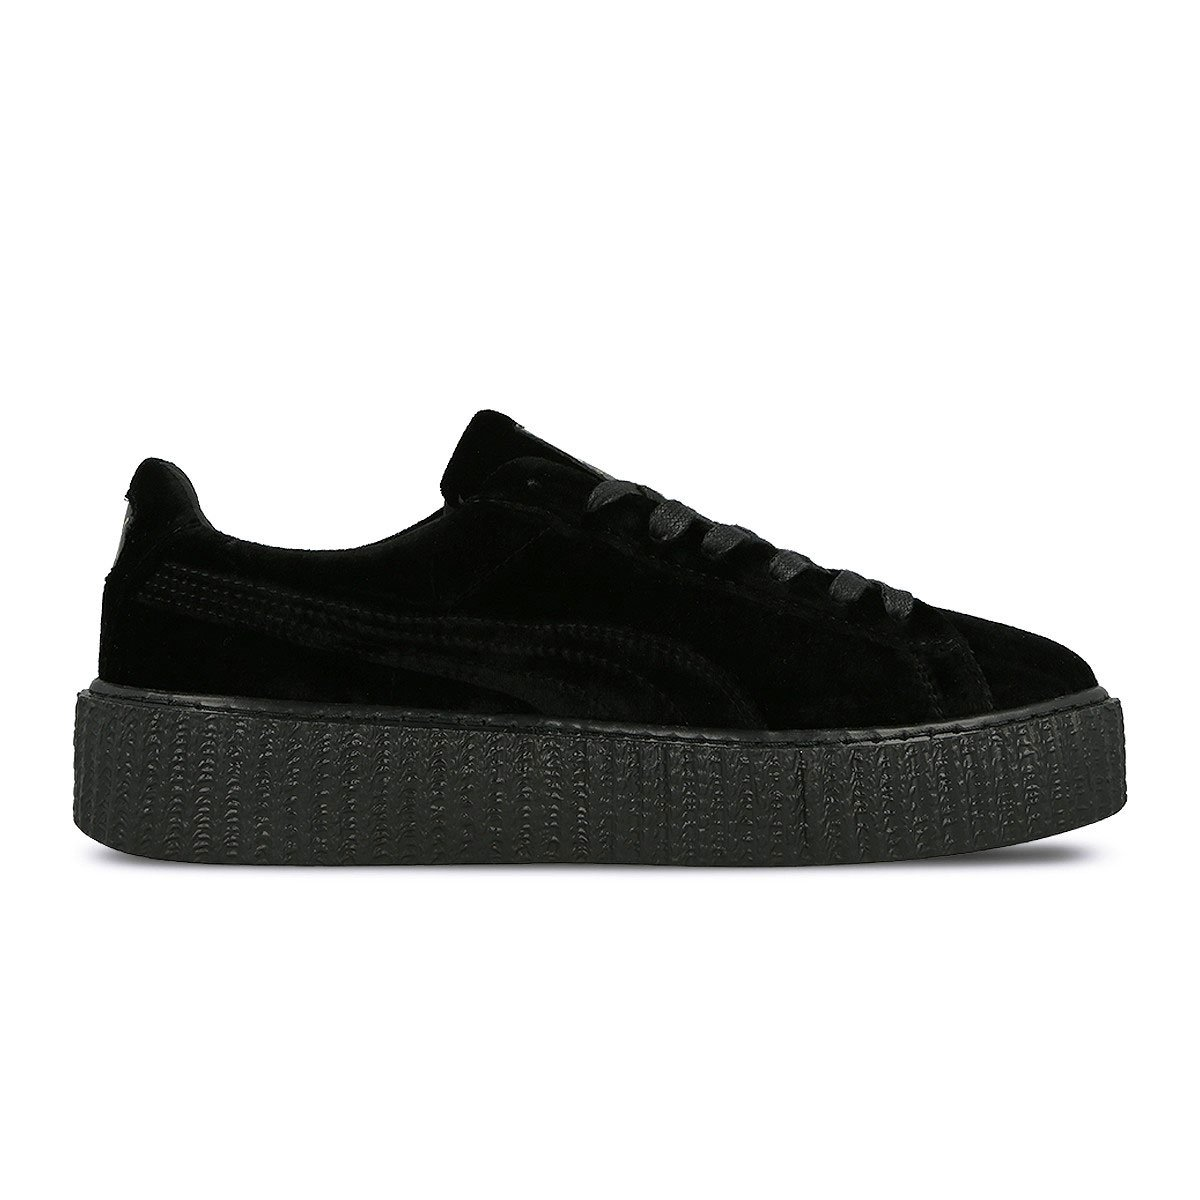 Limited Puma x Rihanna Puma by Rihanna Women's Creeper Velvet Collection B073X25Y9B 7 B(M) US|Black